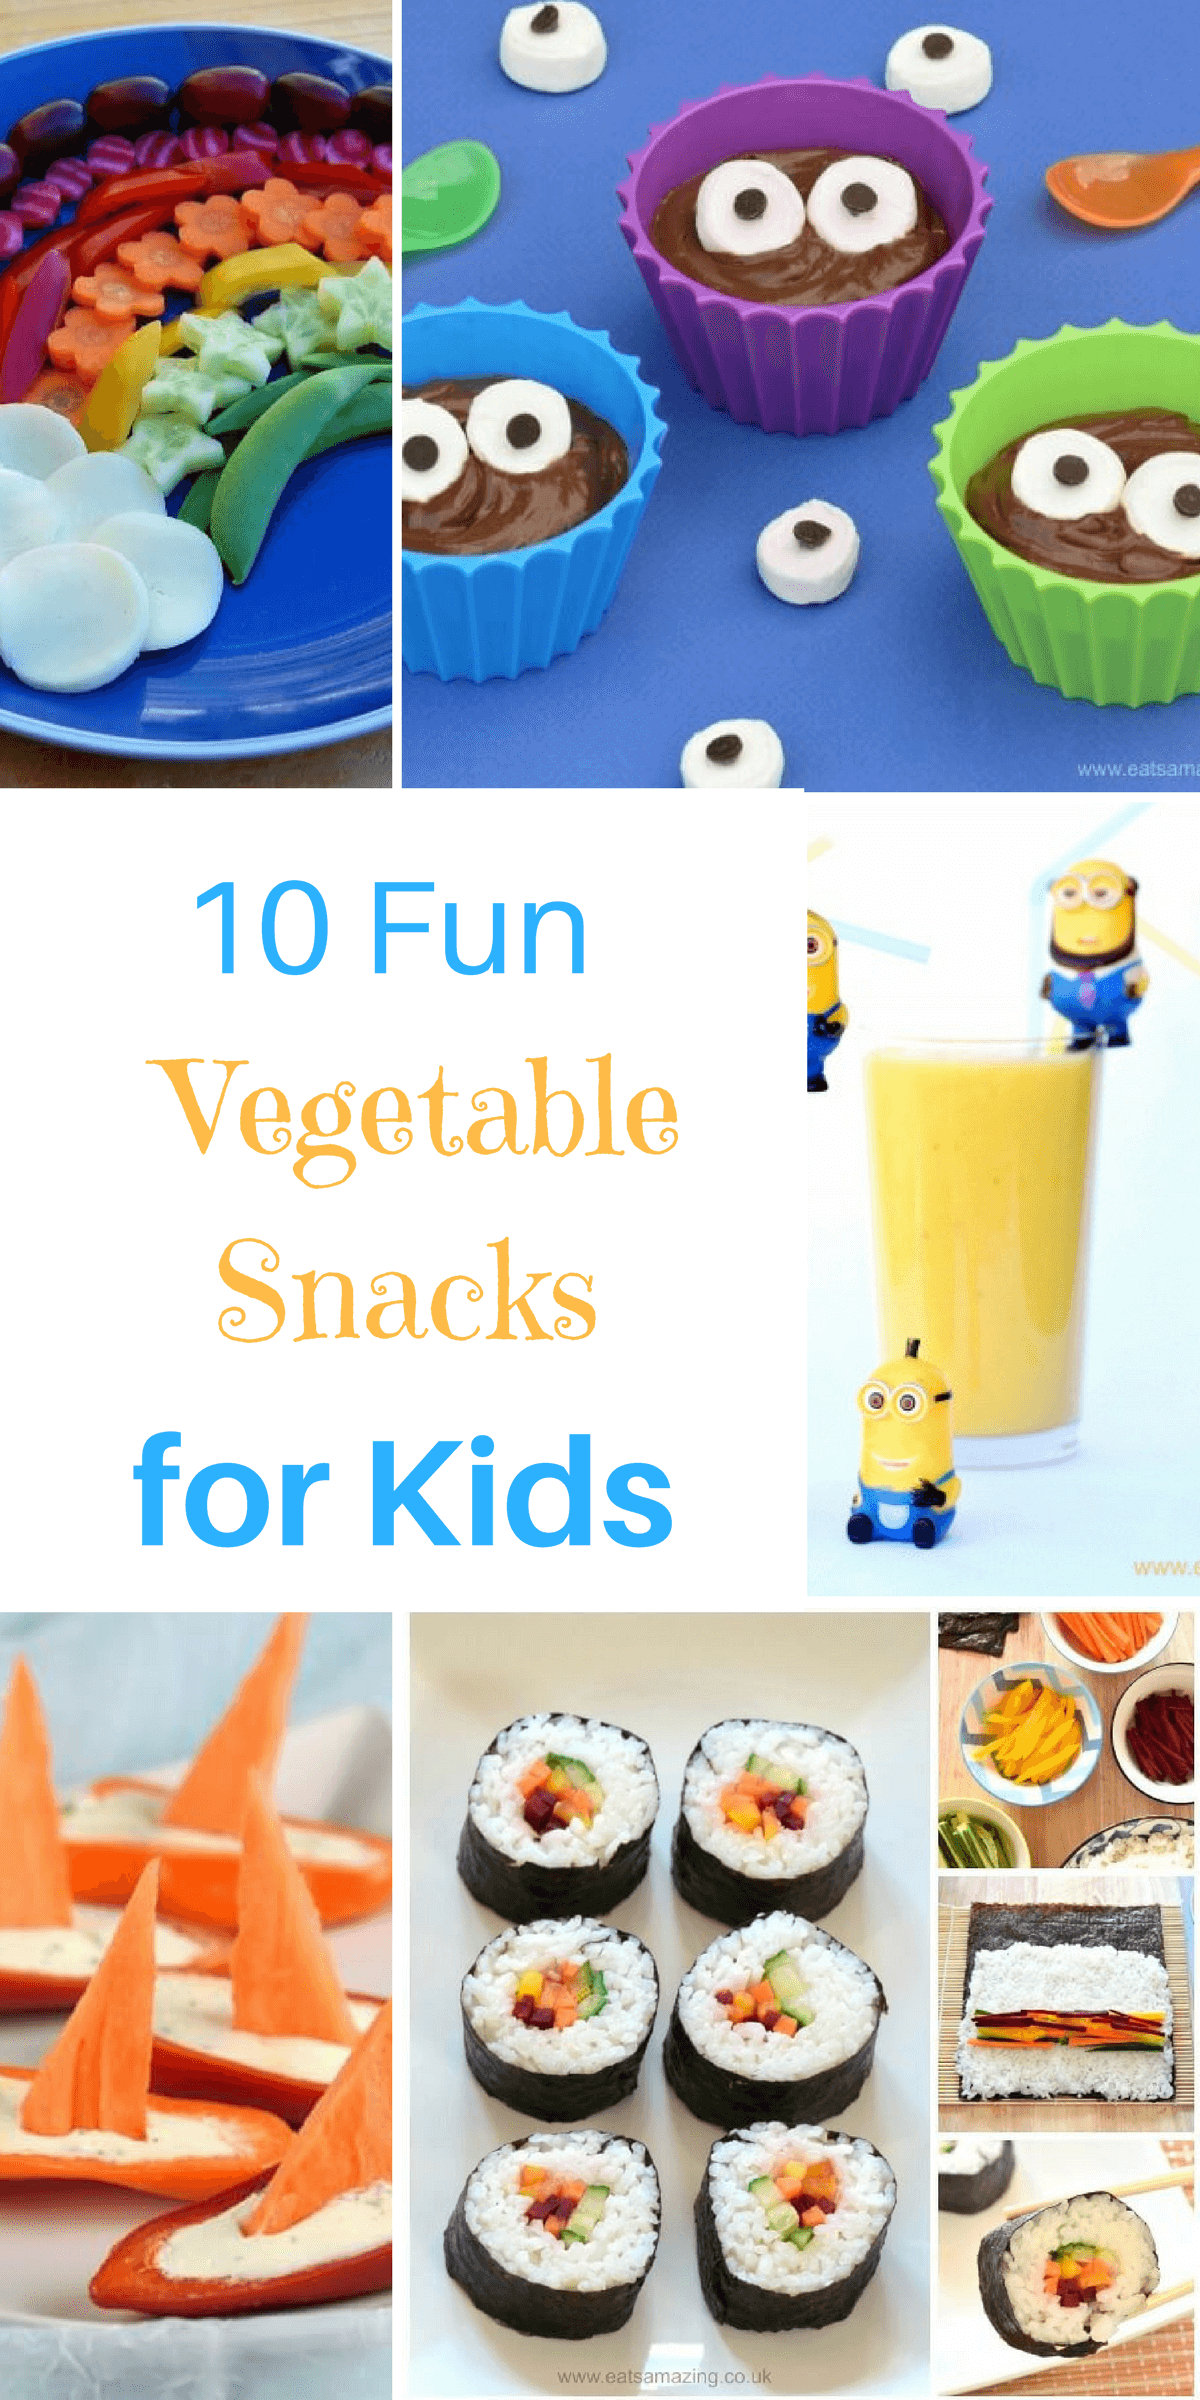 10 cute and easy fun vegetable snacks for kids - get them eating more vegetables with these brilliant fun food recipes and tutorials - Eats Amazing UK